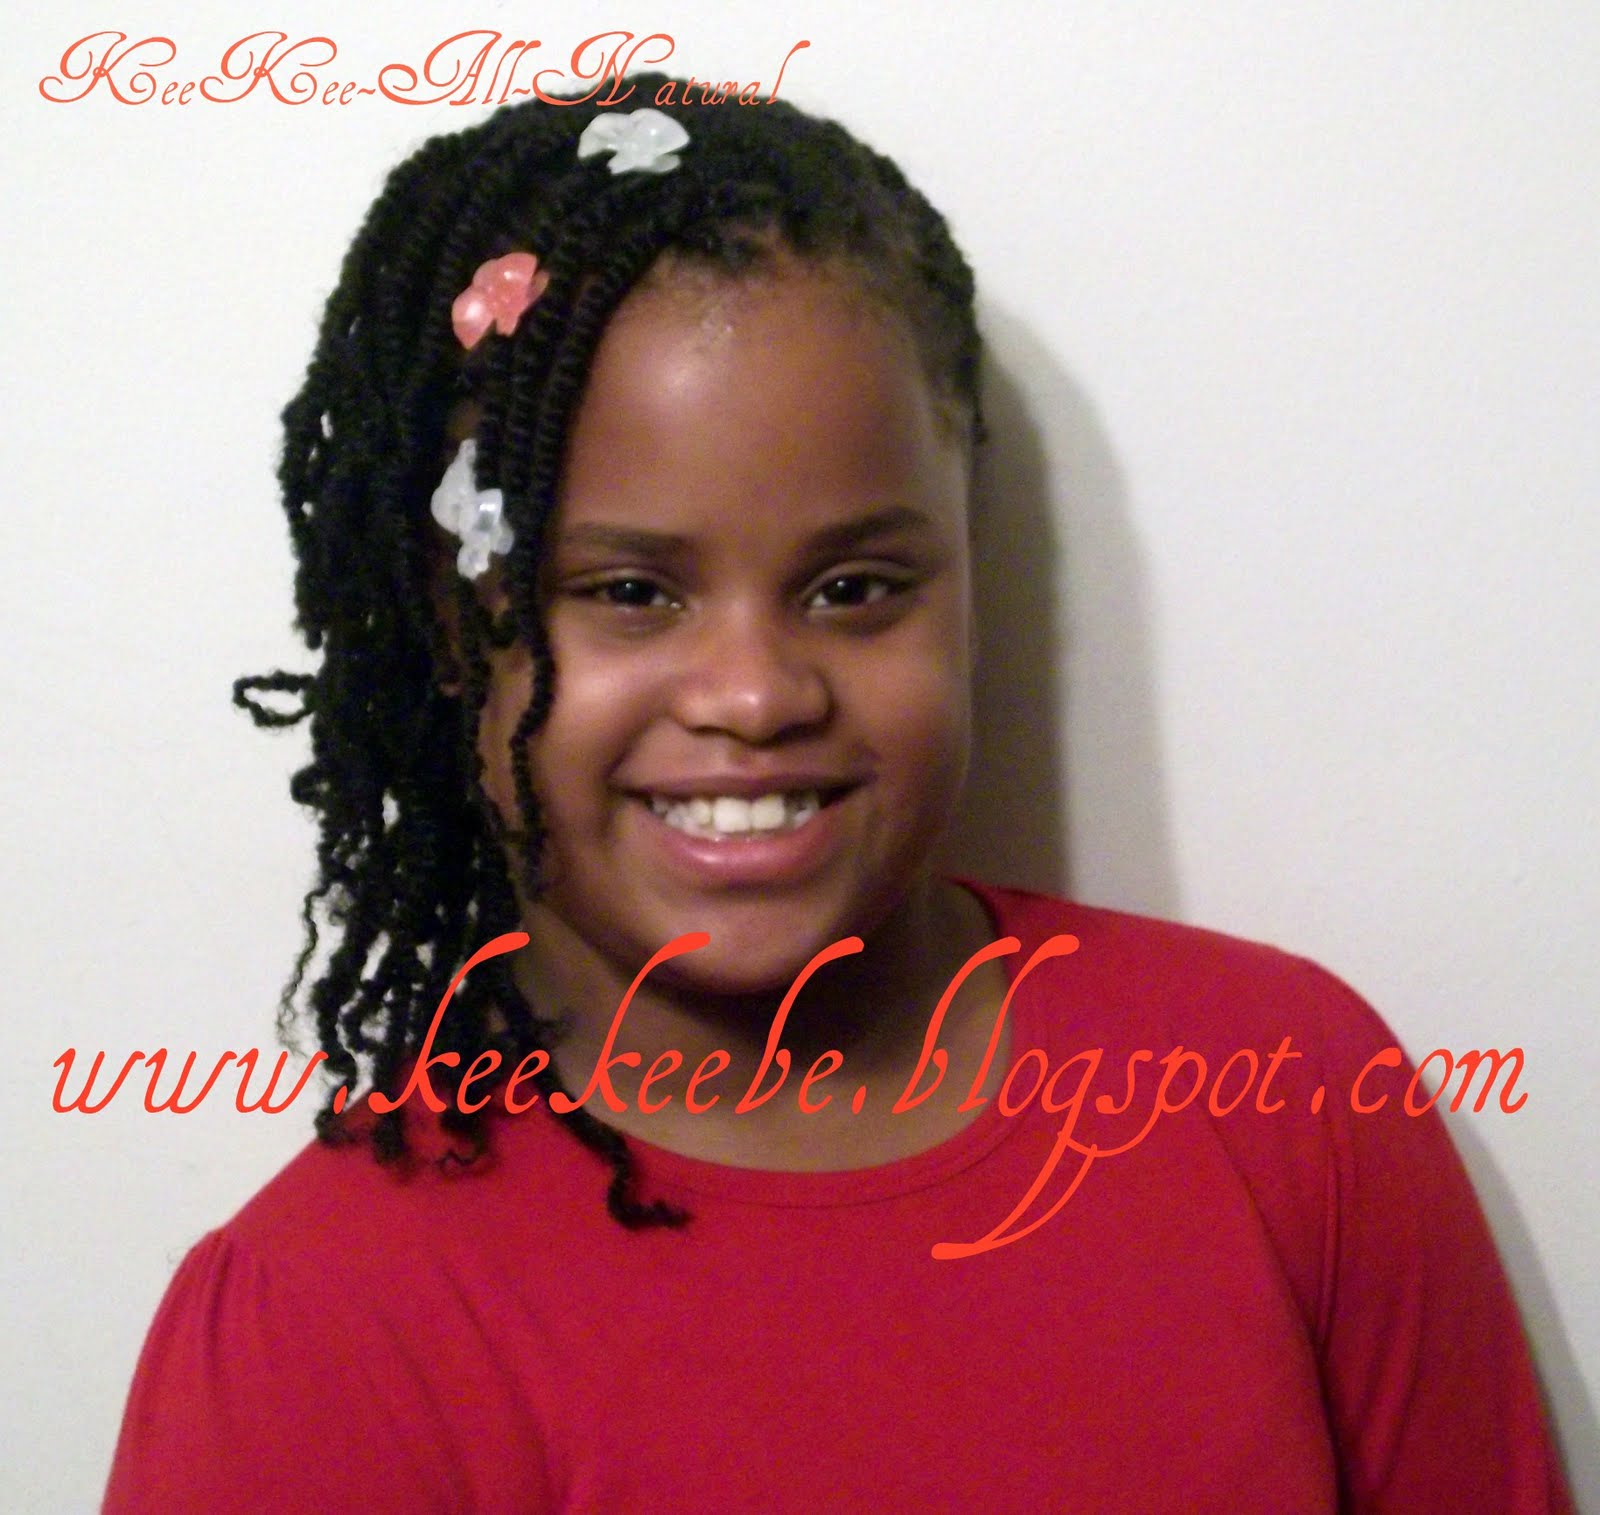 Nubian Locks Hairstyles http://chichisophistication.blogspot.com/2010/11/ty-ty-new-hair-do.html